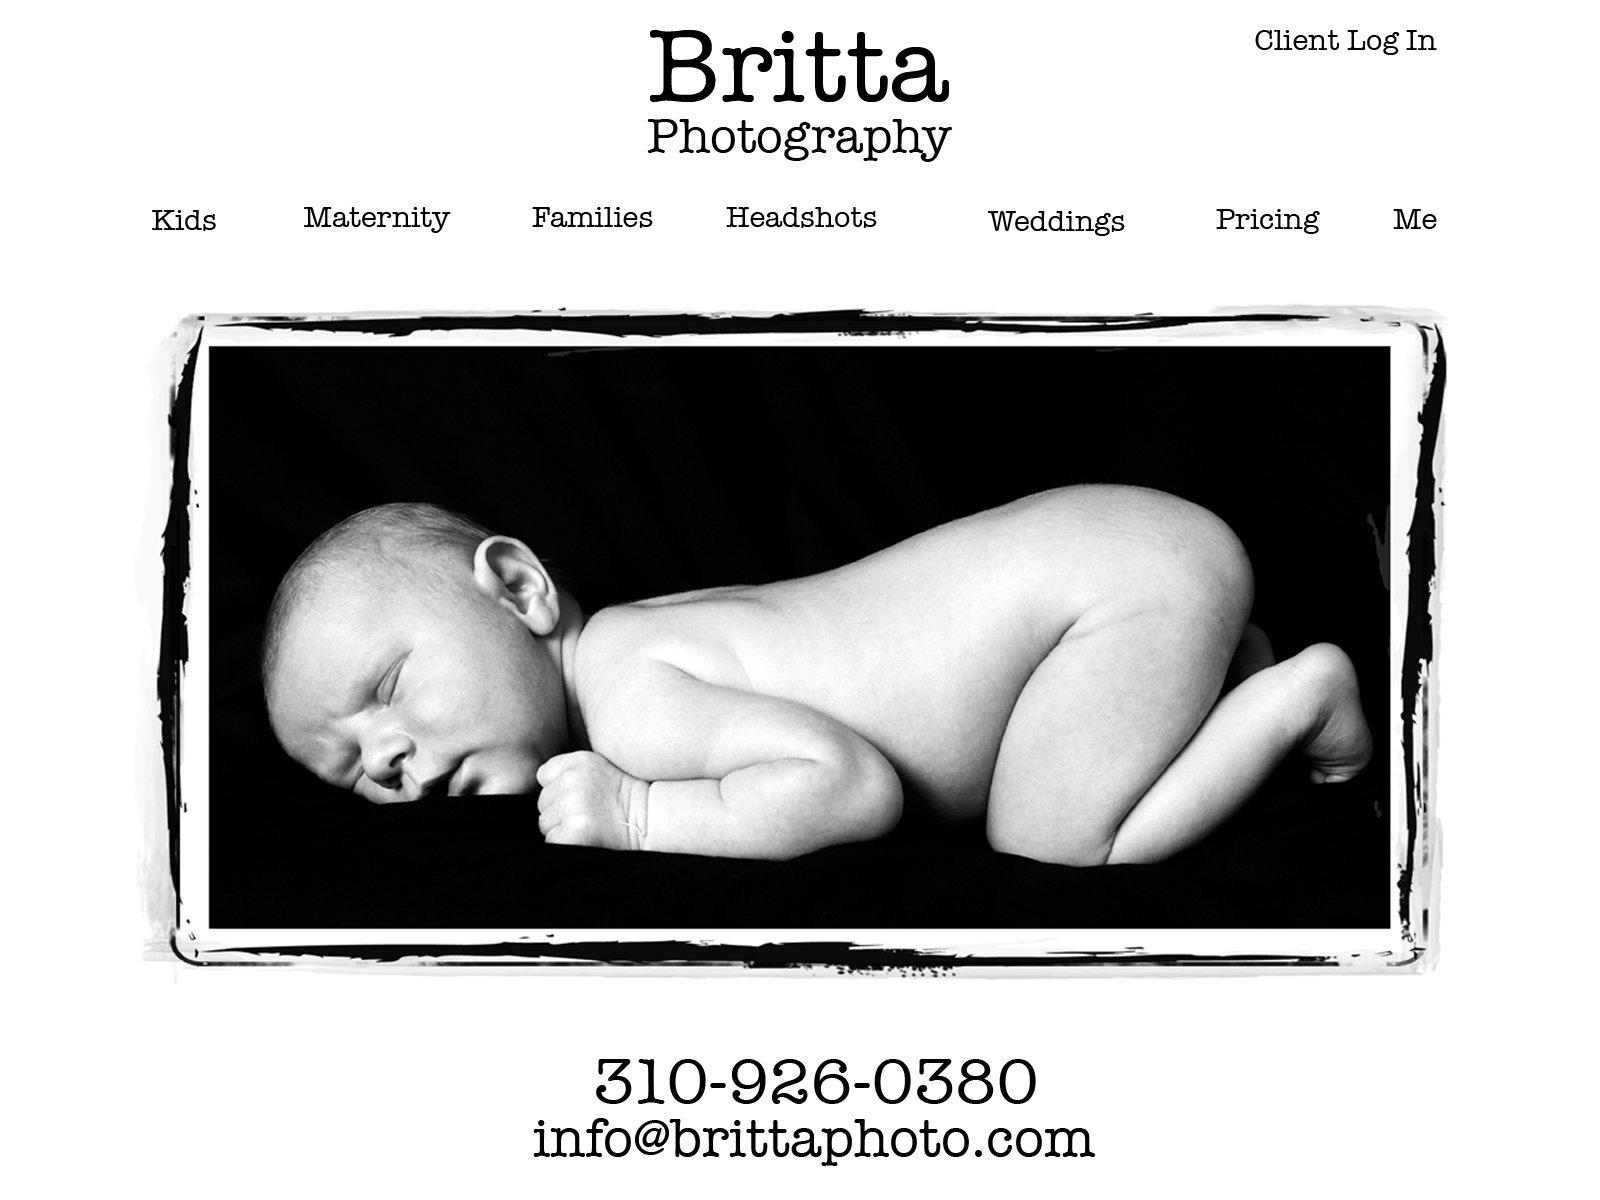 children photographer,britta photography, los angeles, california, 310-926-0380